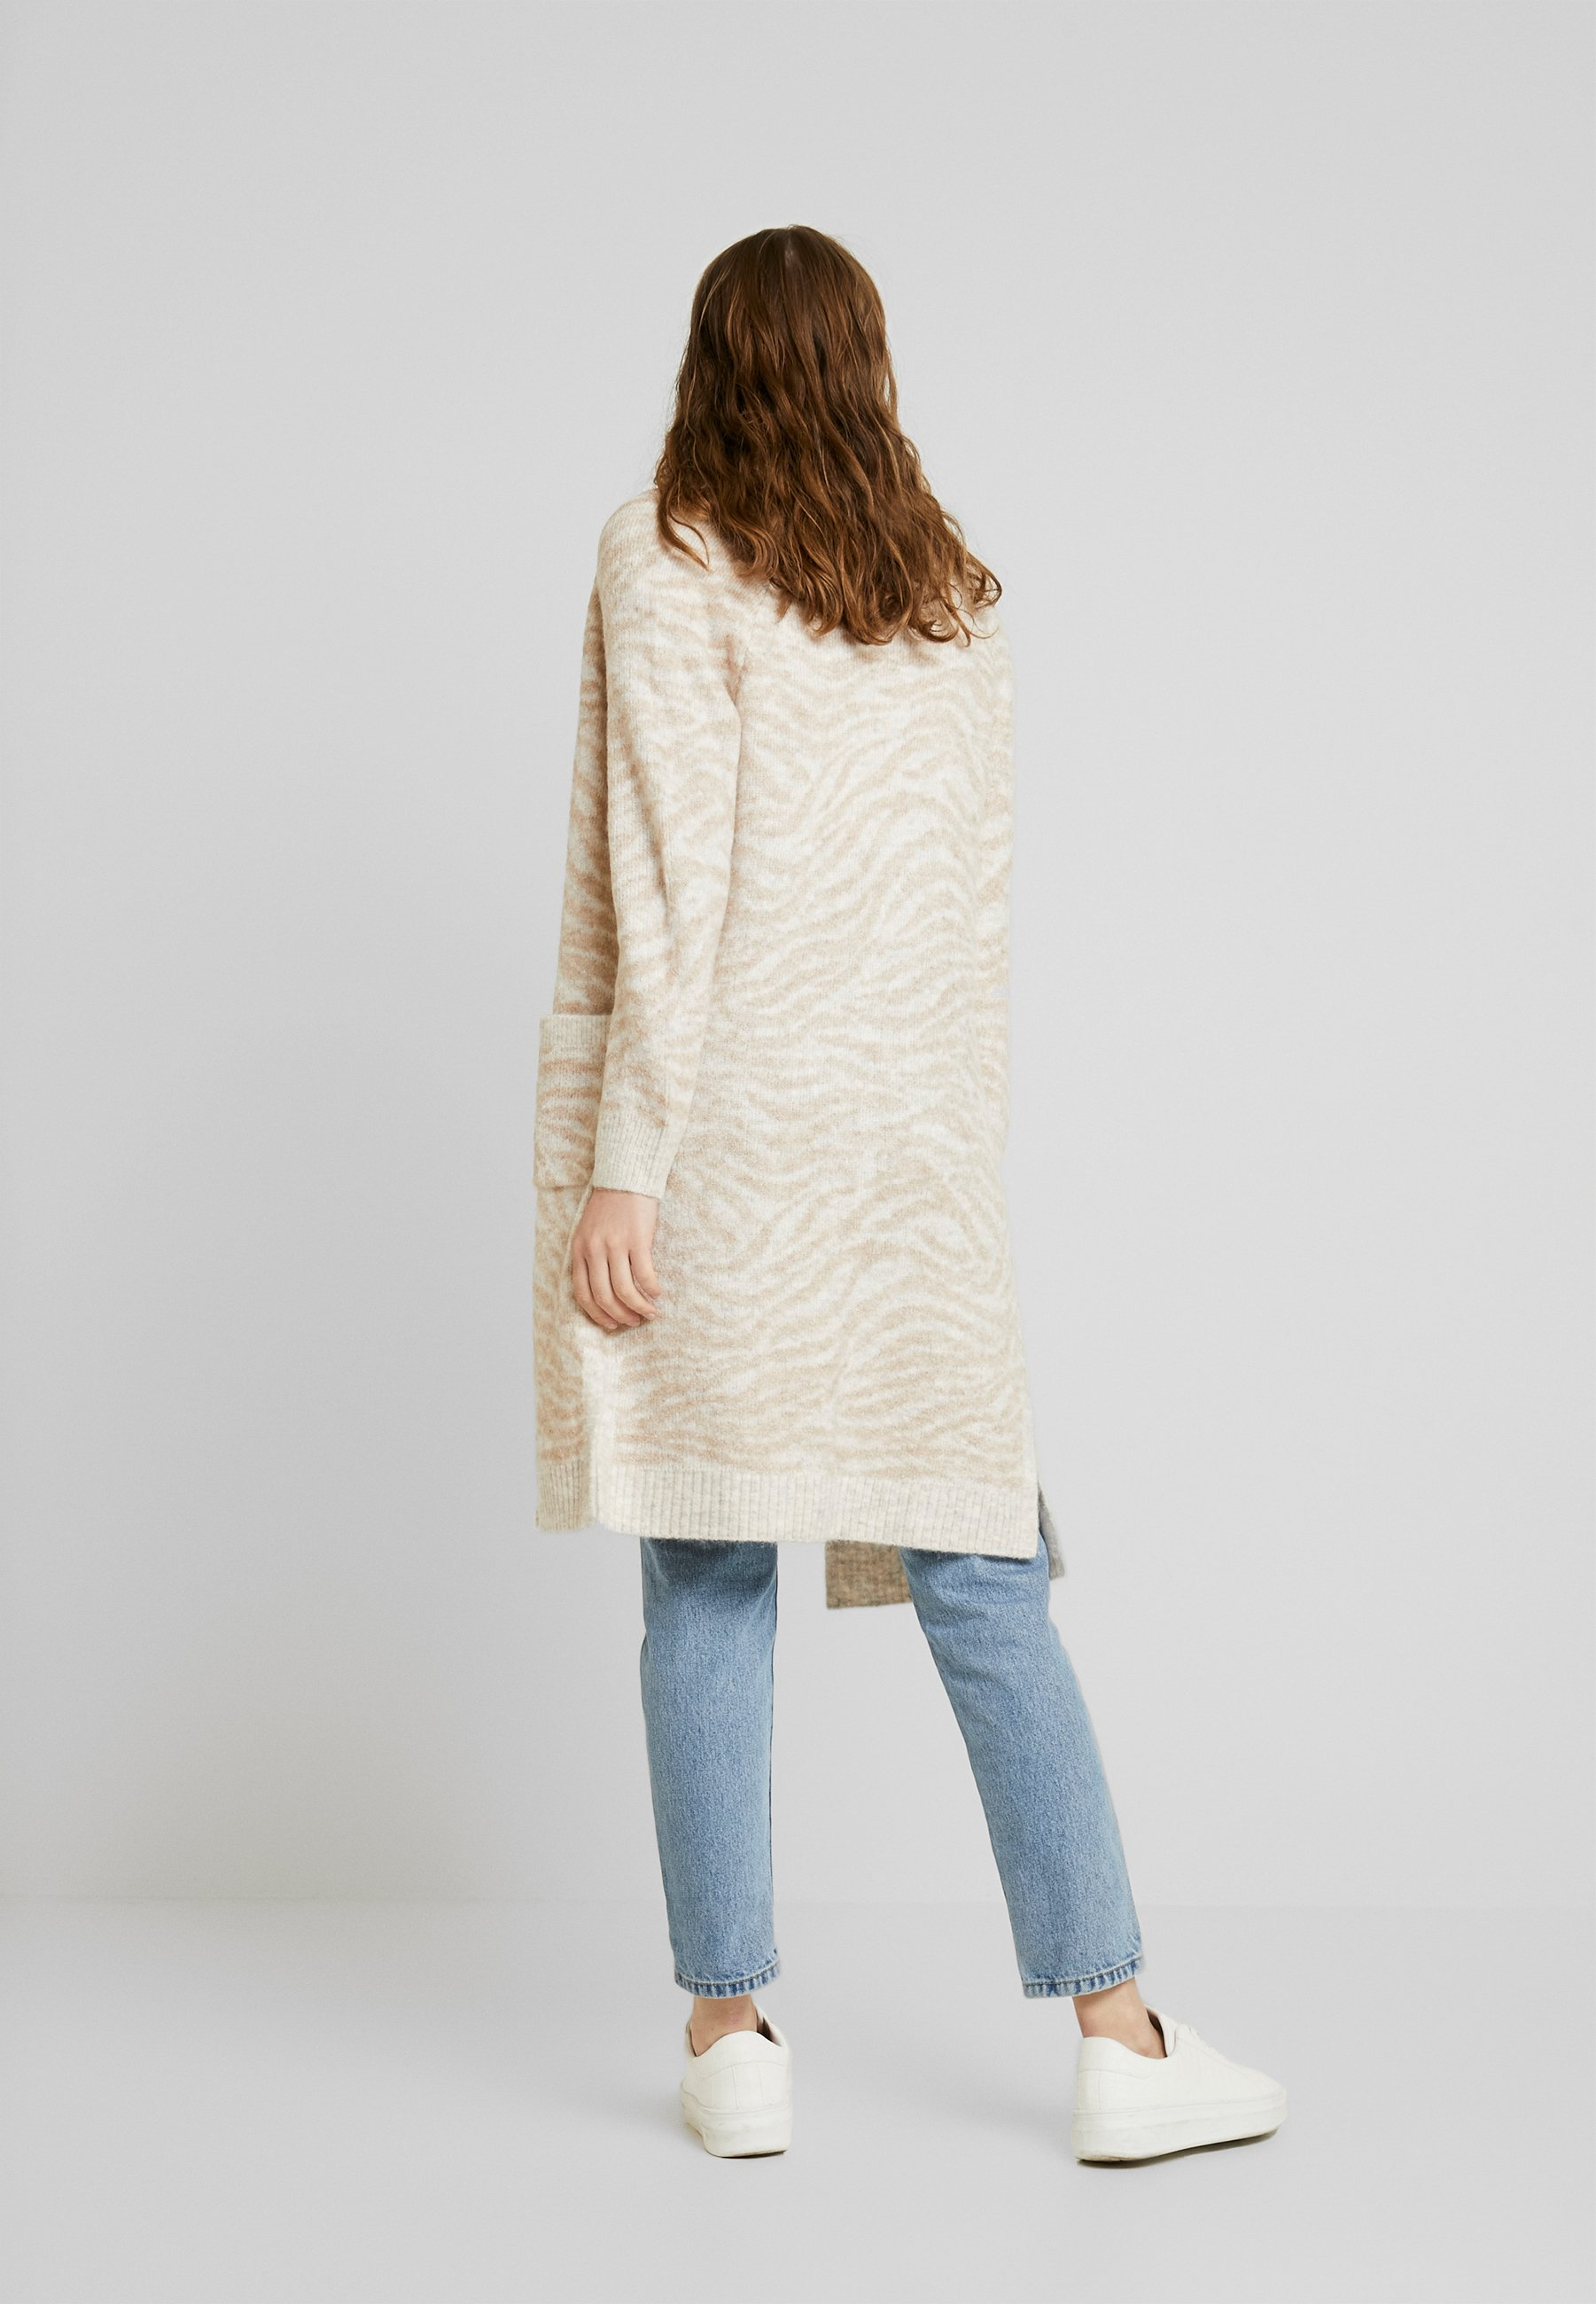 Abercrombie & Fitch Cardigan - Neutral Brown